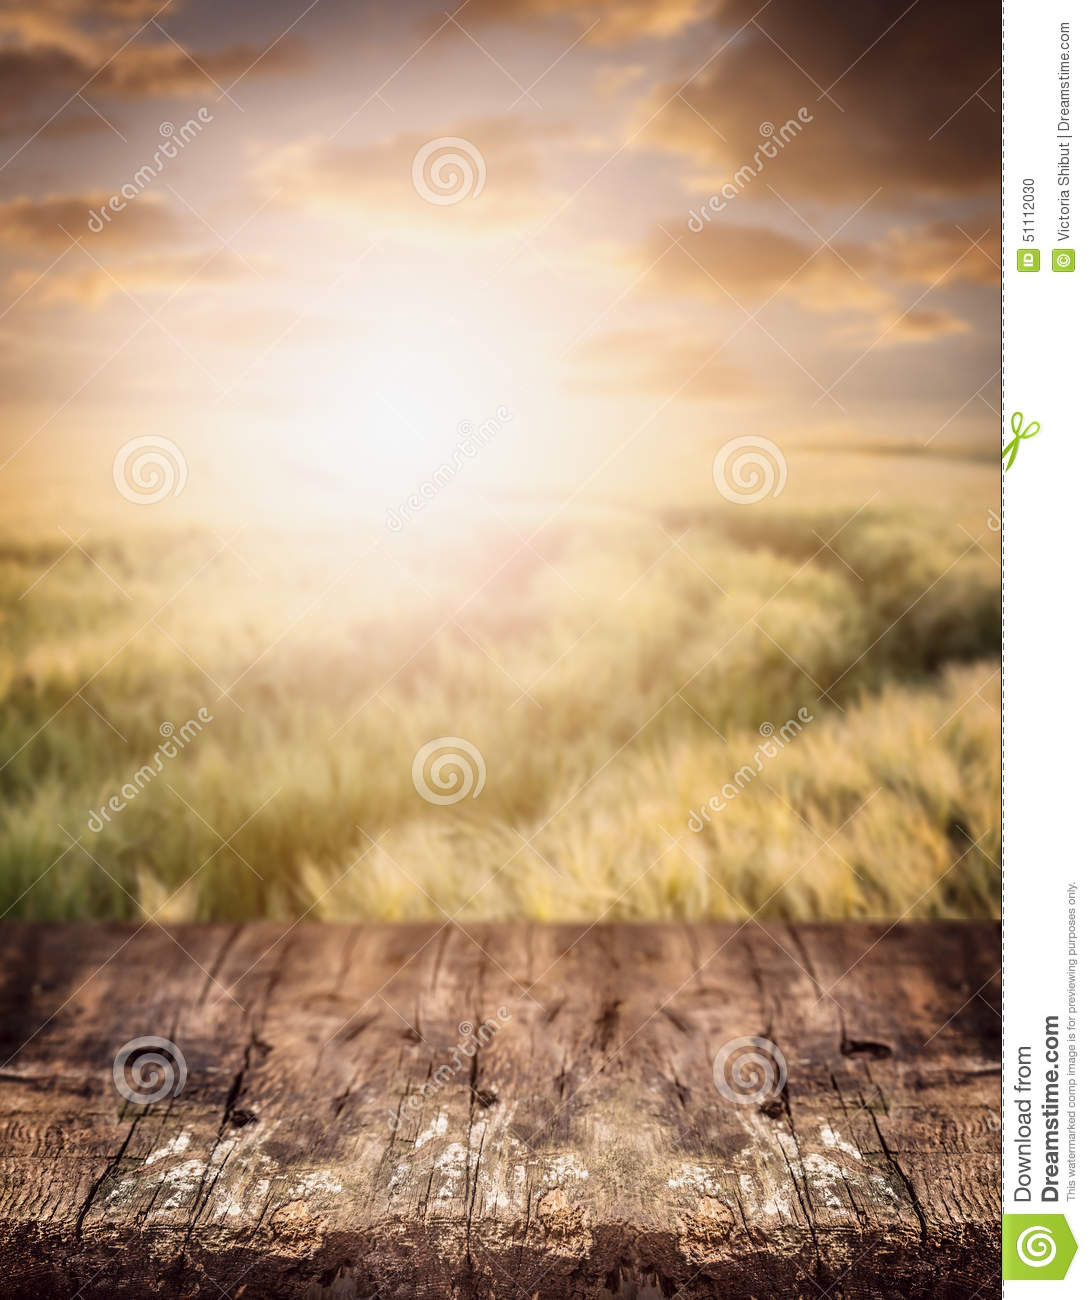 Rustic Wooden Table Over Wheat Field And Sunset Sky